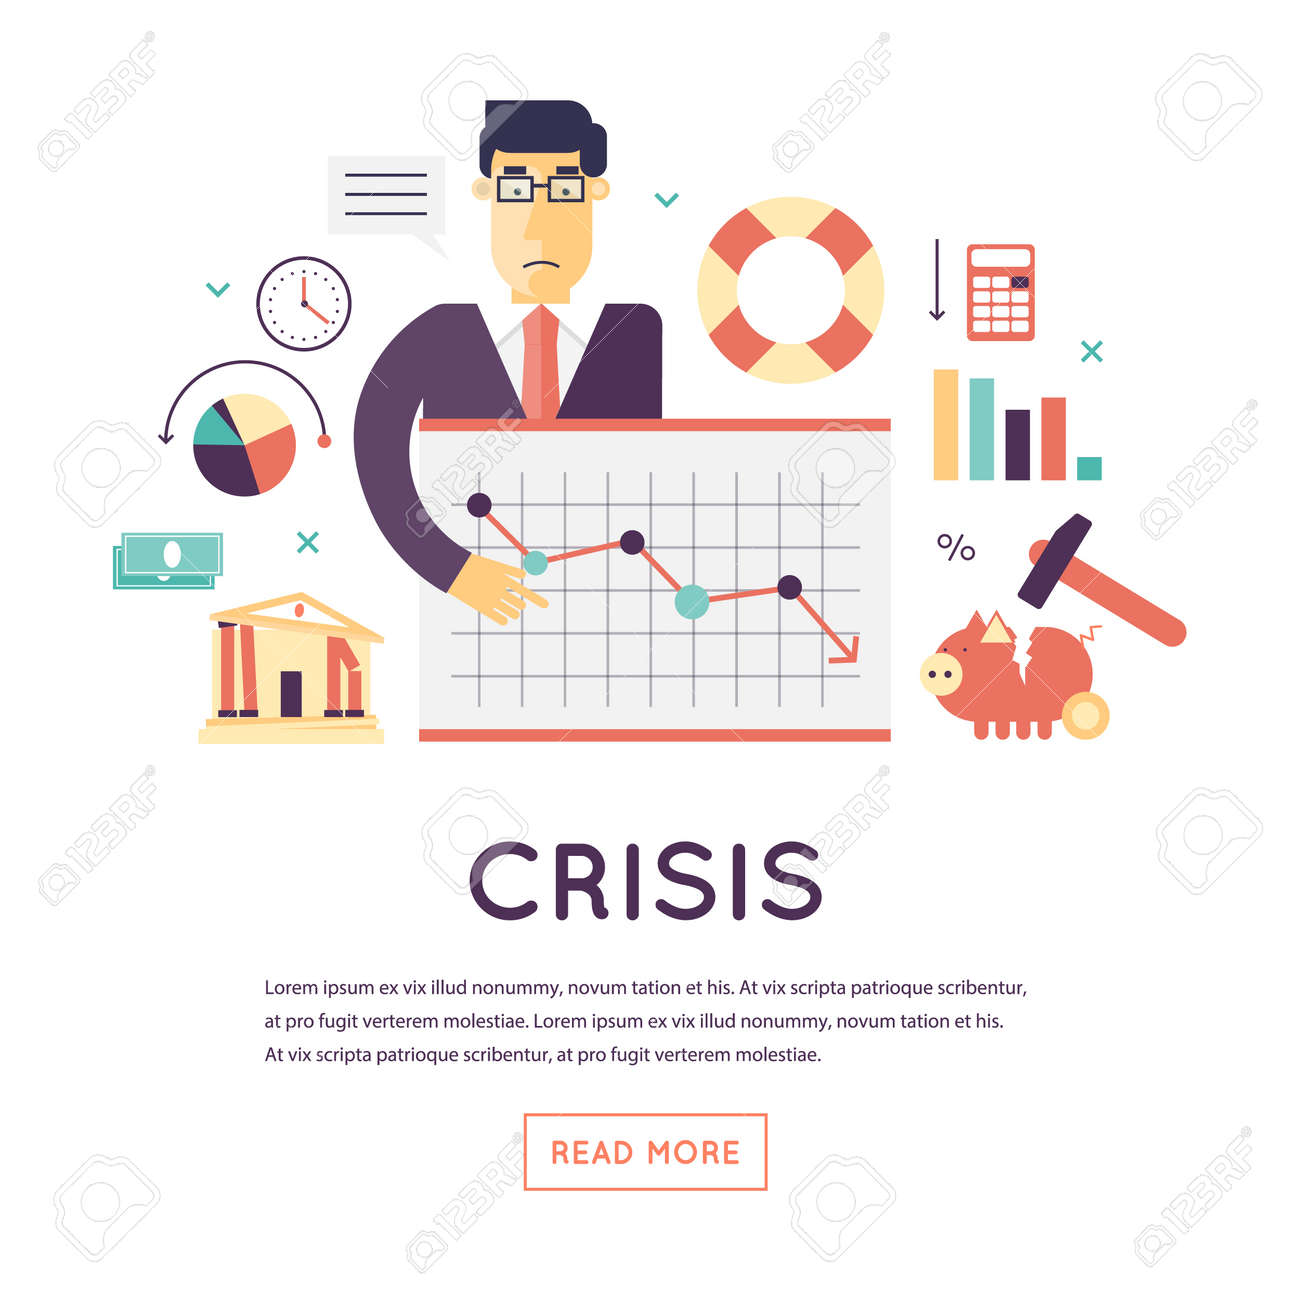 Crisis economic, falling graph of a stock market, financial crisis, bankruptcy. Flat design vector illustration isolated on white background. - 51274193